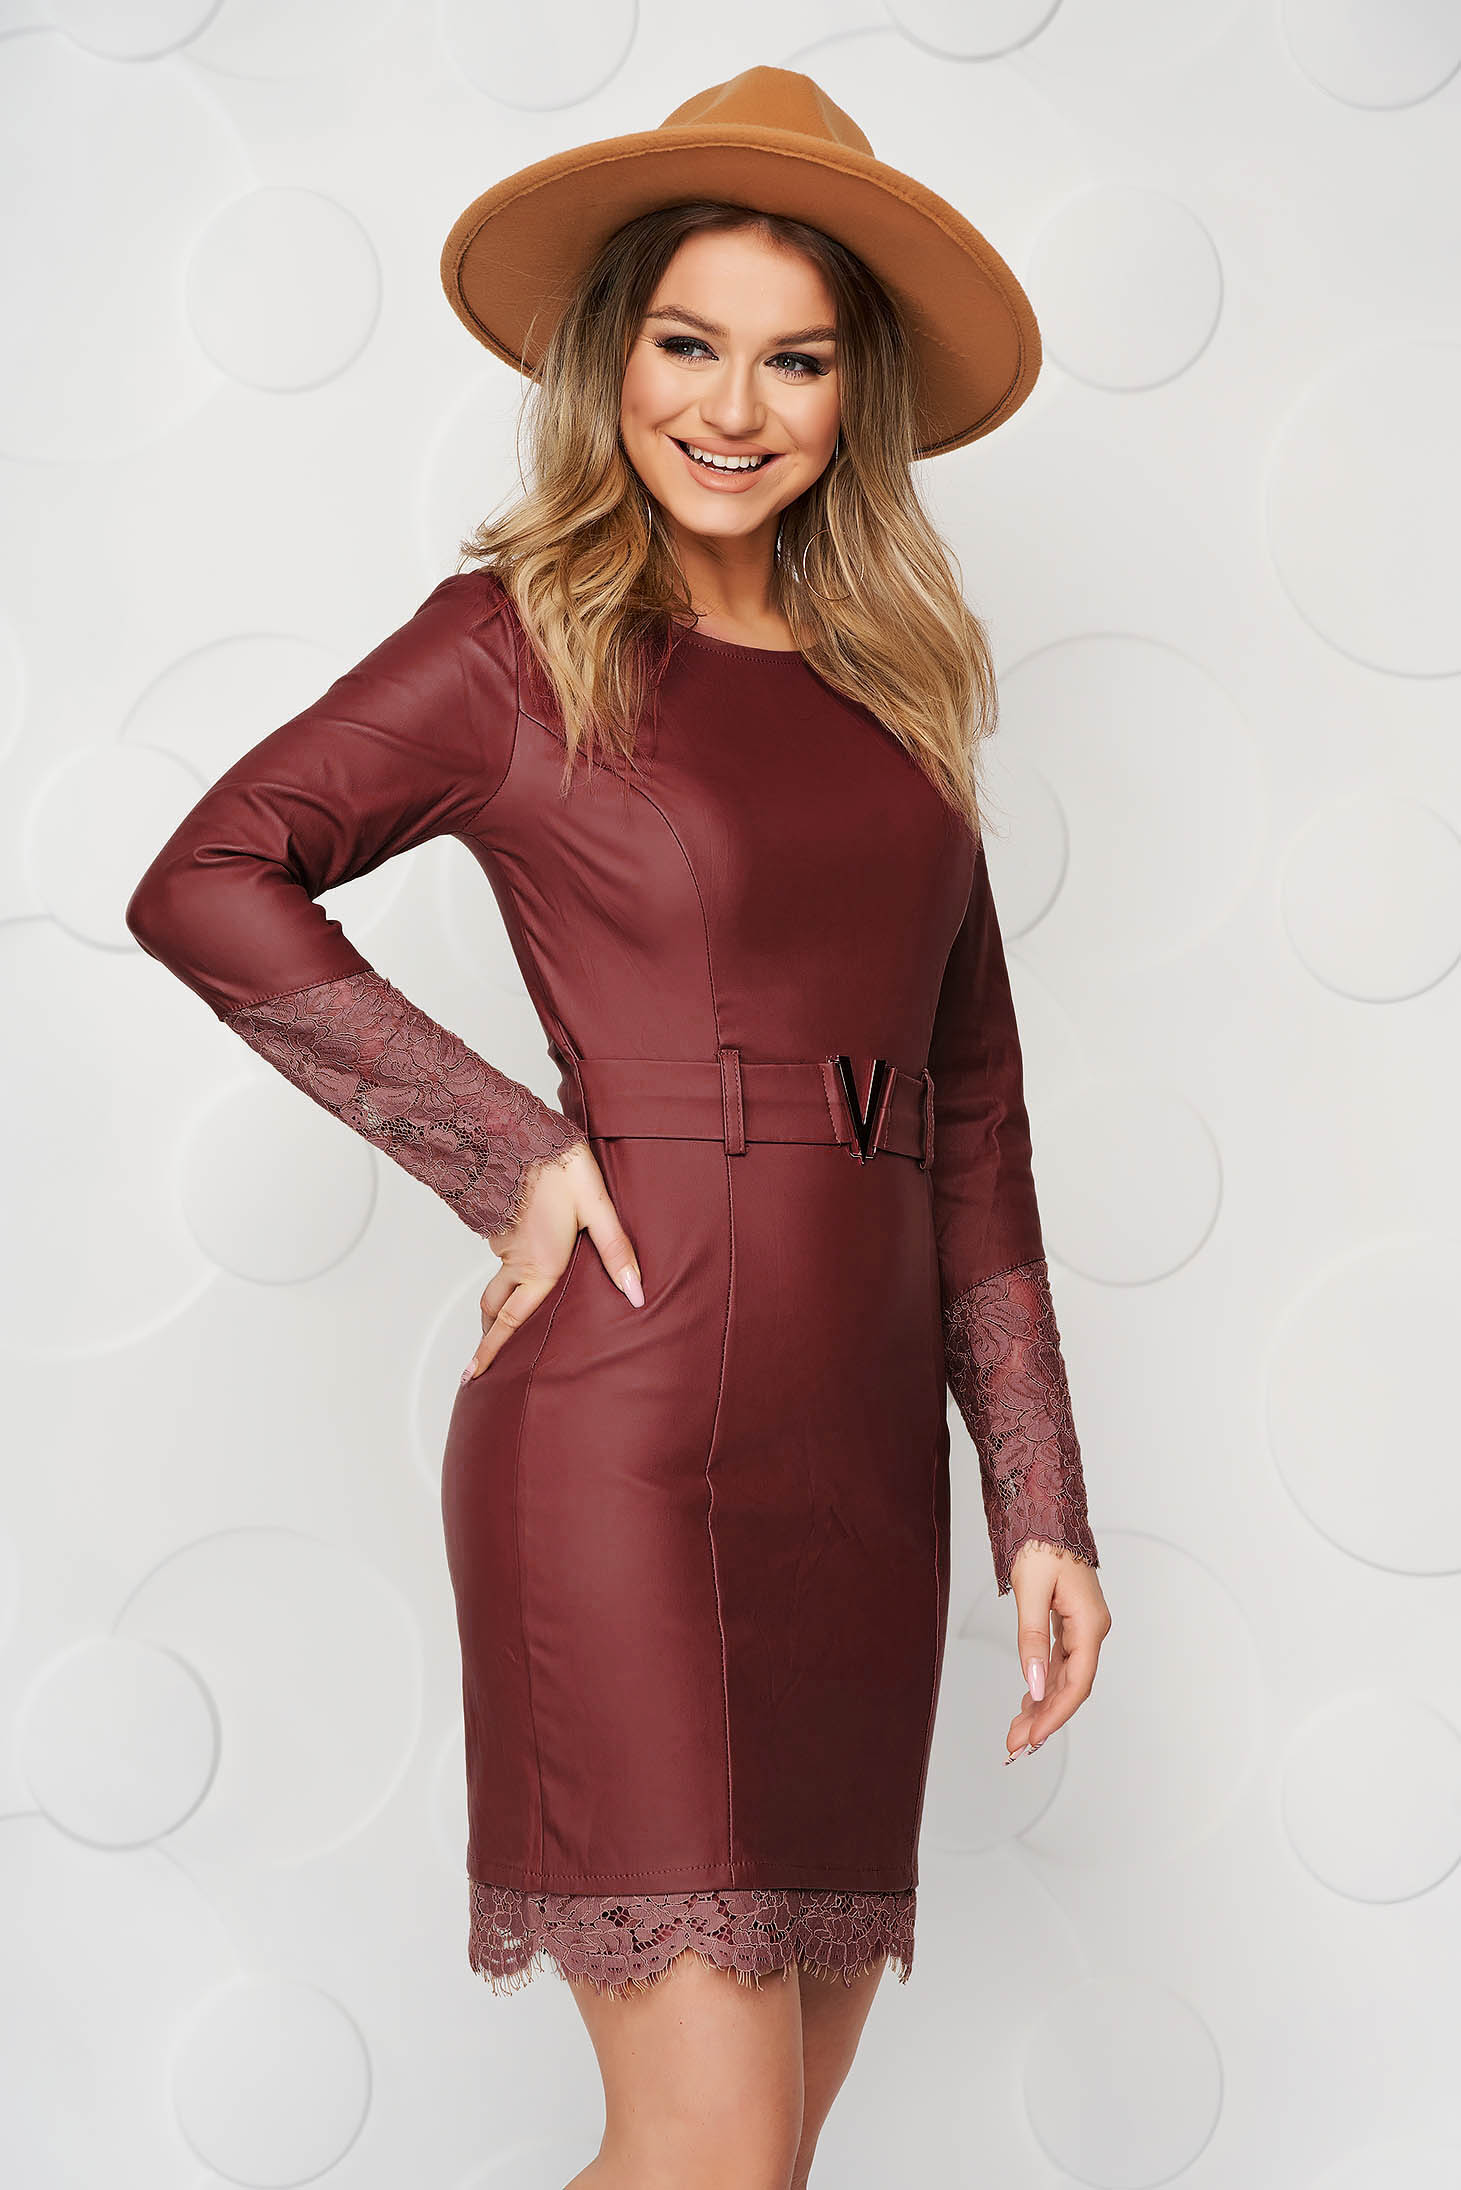 Burgundy dress from ecological leather pencil with lace details